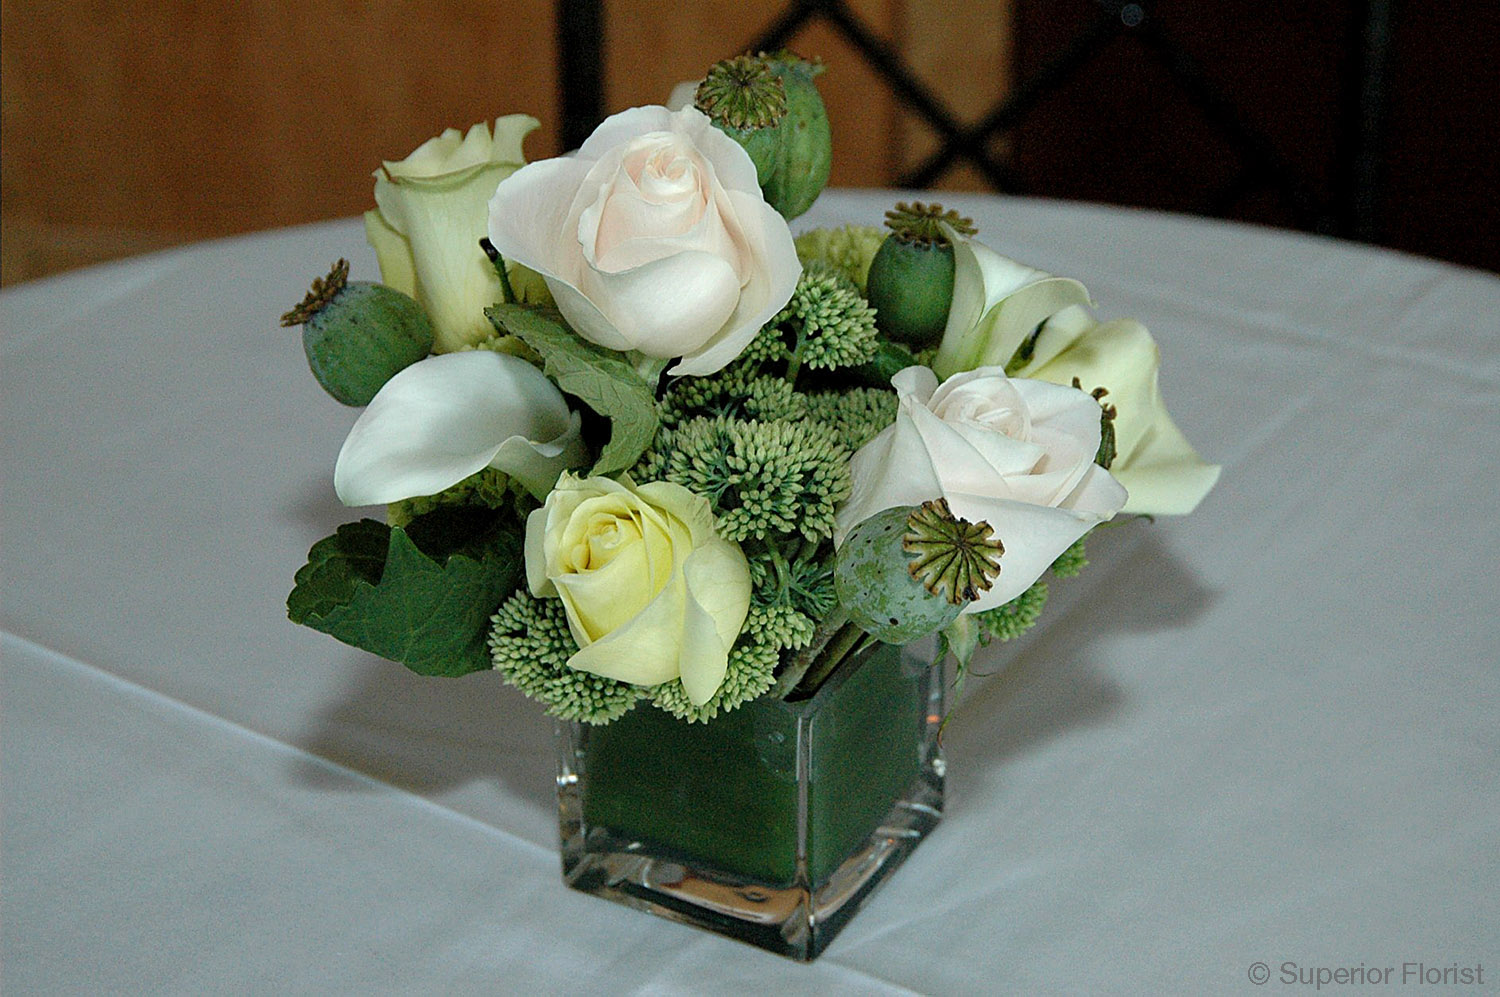 Superior Florist – Cocktail Tables: Floral arrangement of white roses, white mini-Callas, Sedum and poppy pods in clear, glass cube vase. Inside of vase lined with leaf wrap.